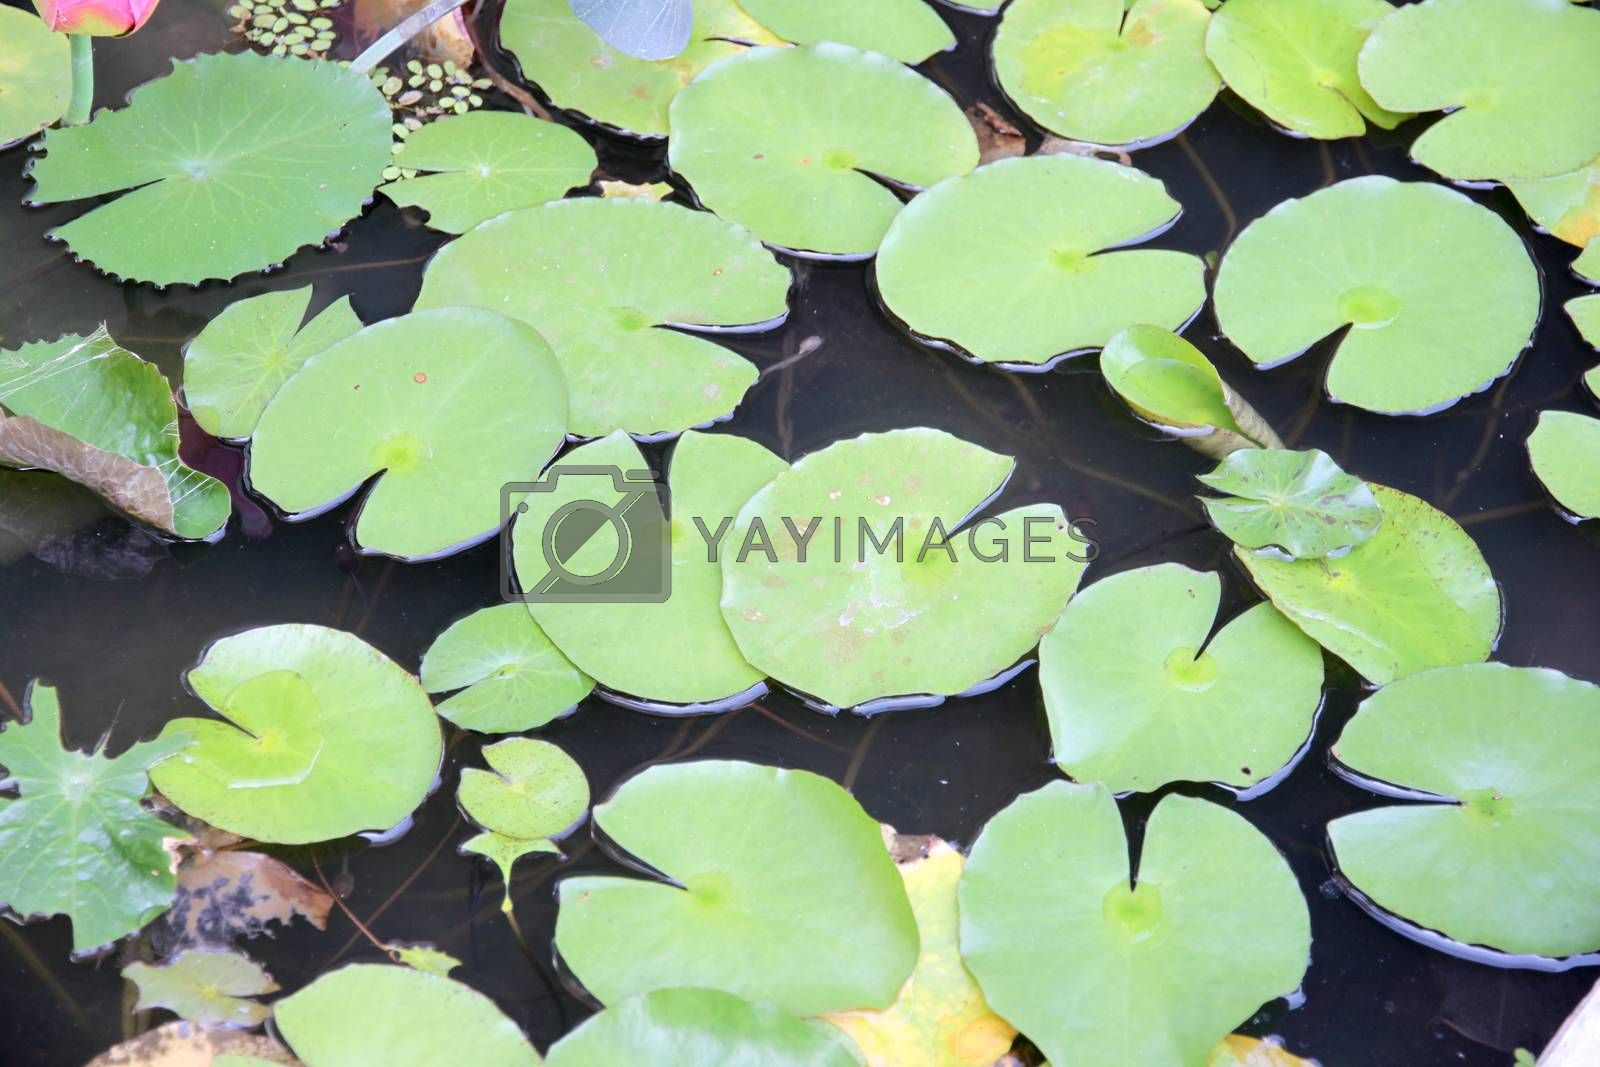 The Green lotus leaf in a pond.